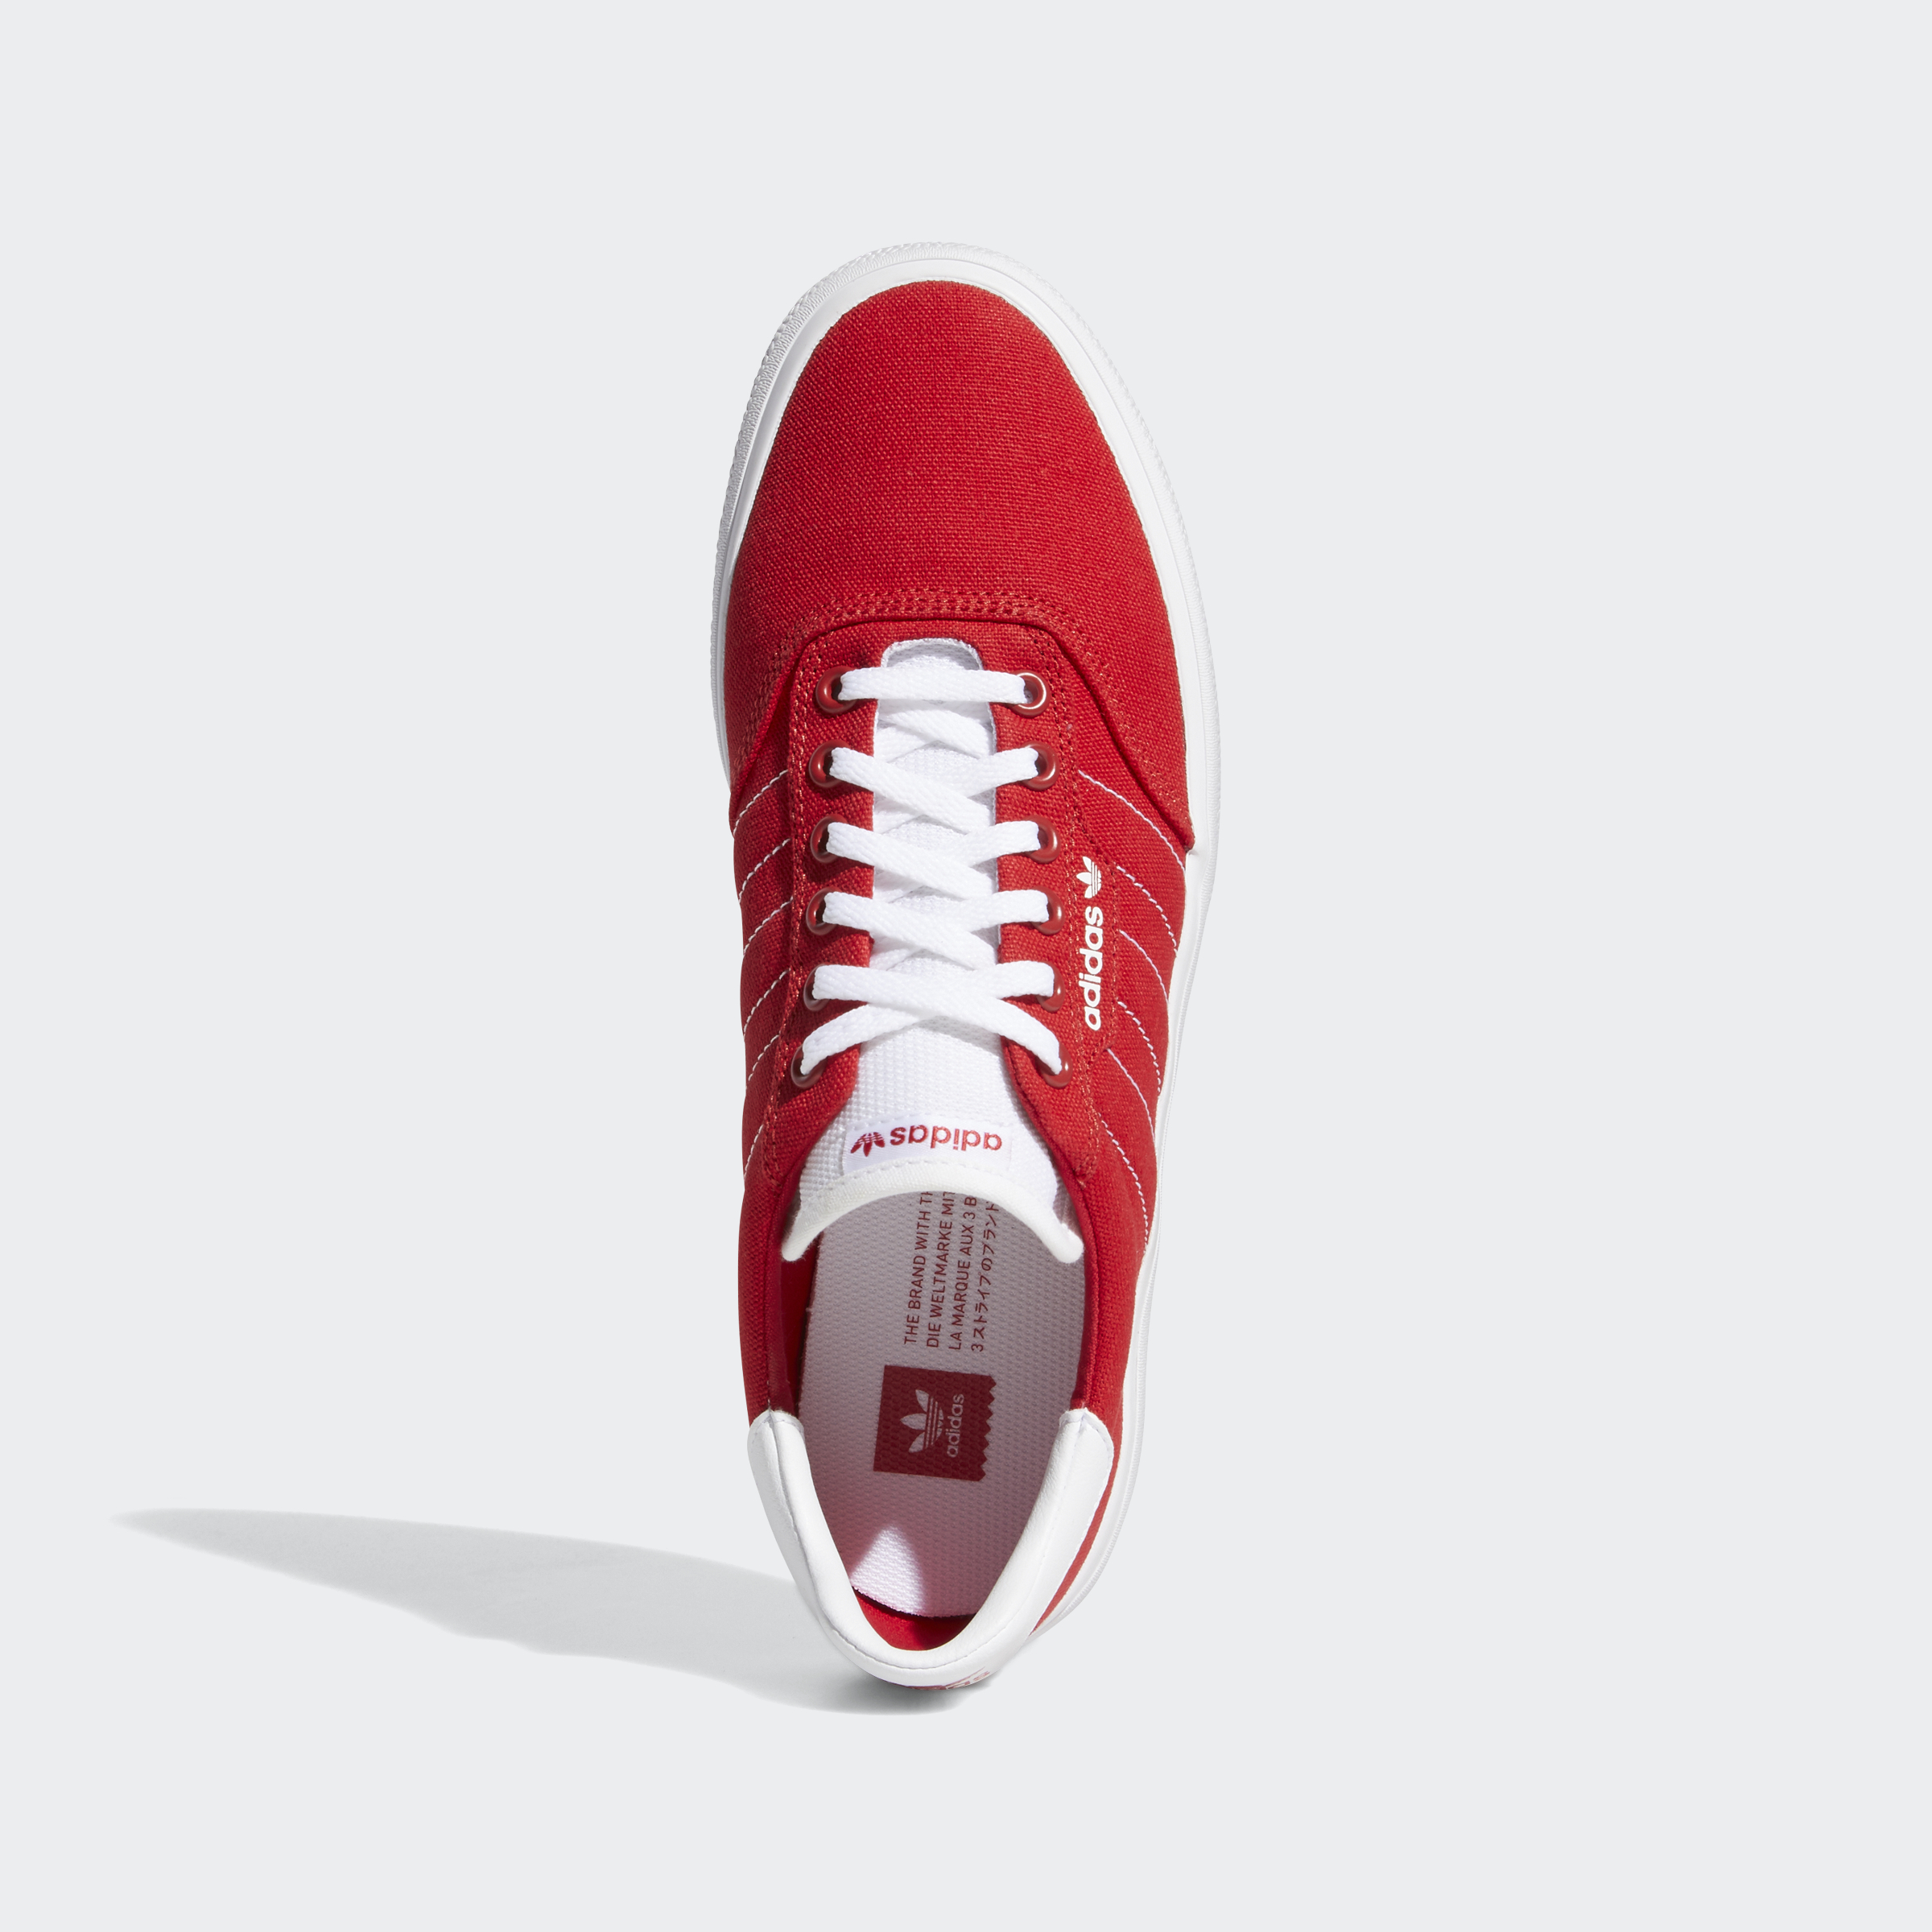 adidas-3MC-Shoes-Athletic-amp-Sneakers miniature 22